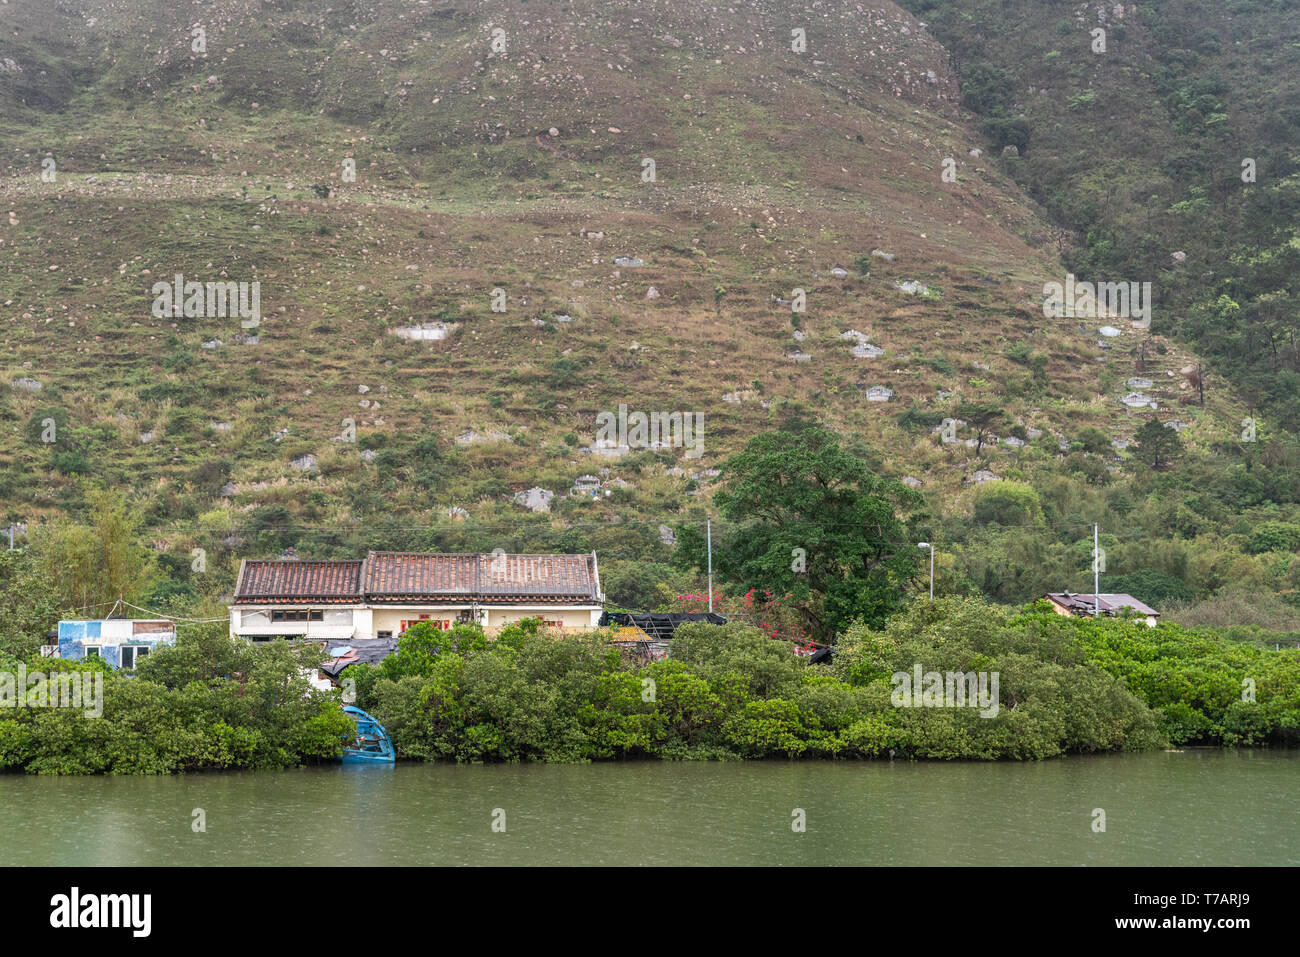 Hong Kong, China - March 7, 2019: Tai O Fishing village. Cemetery on flank of green hill has Chinese style family monuments. Front is river and house  - Stock Image